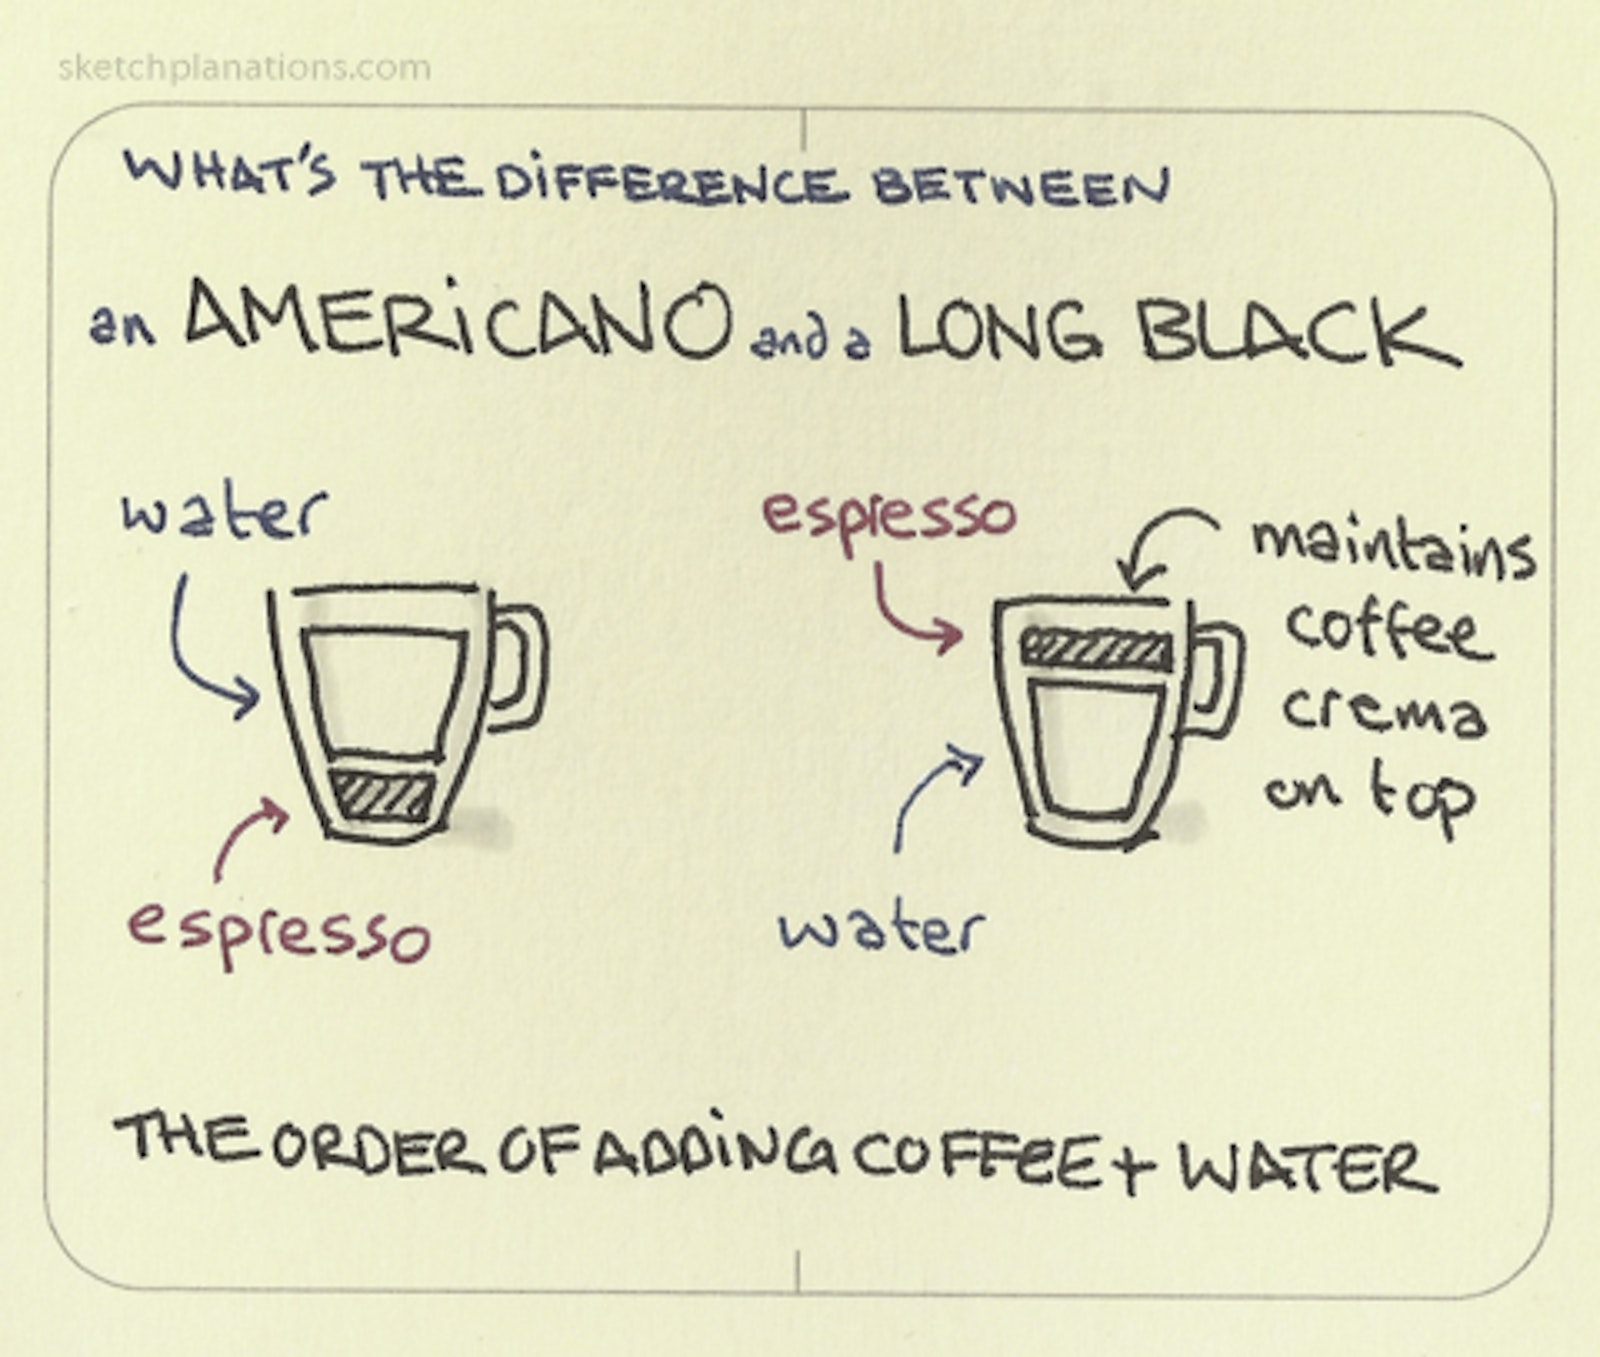 An Americano And A Long Black The Difference Sketchplanations